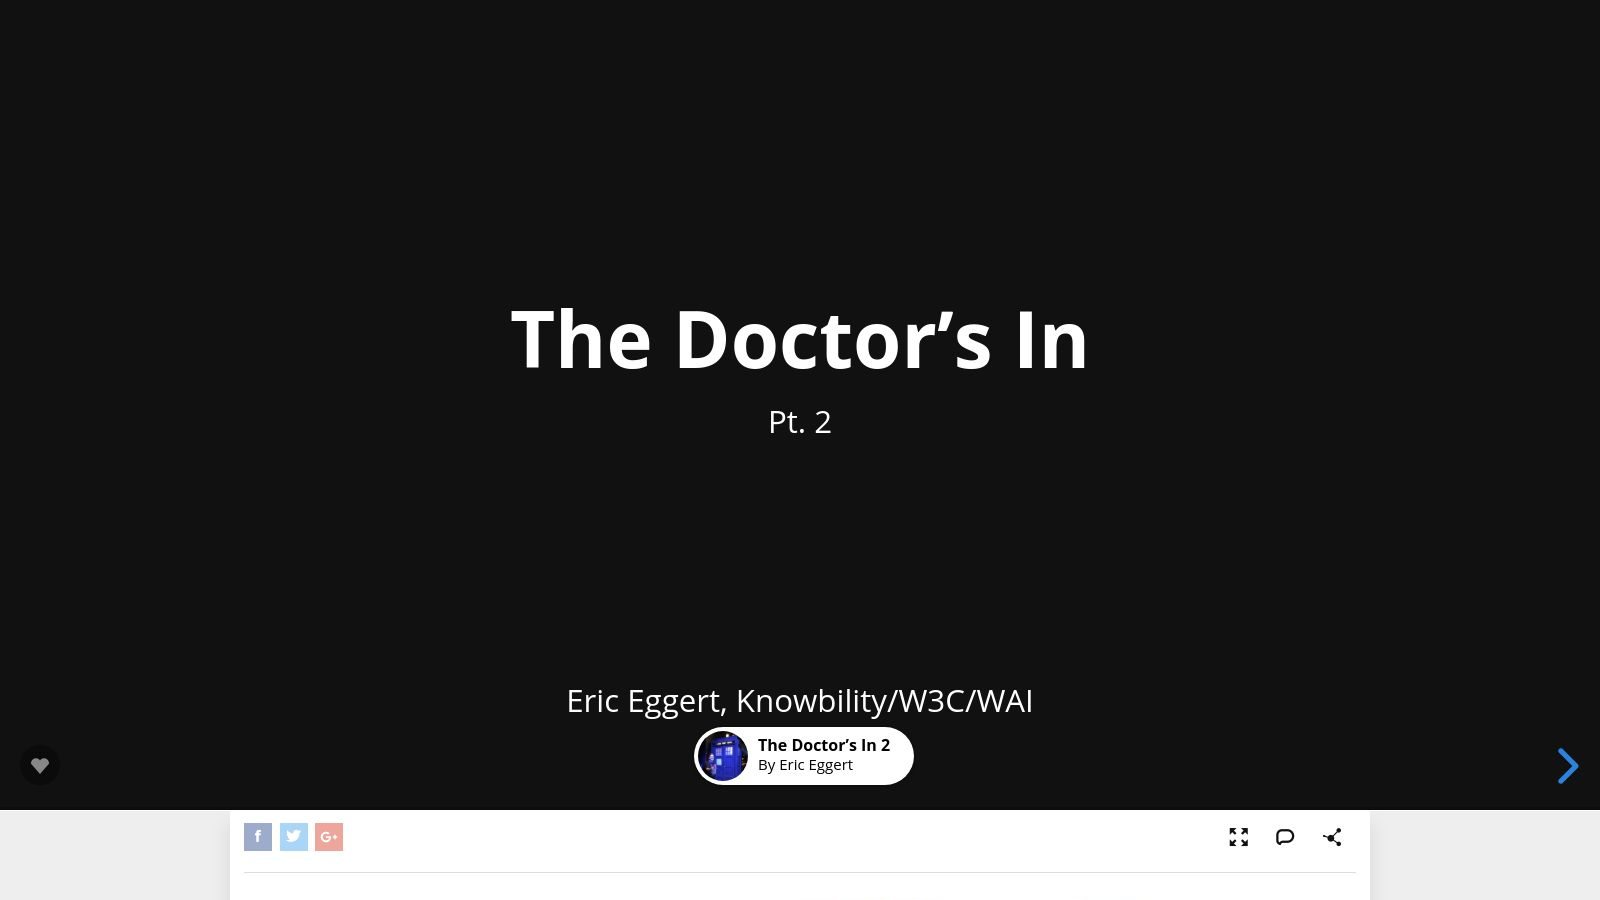 The Doctor's In 2